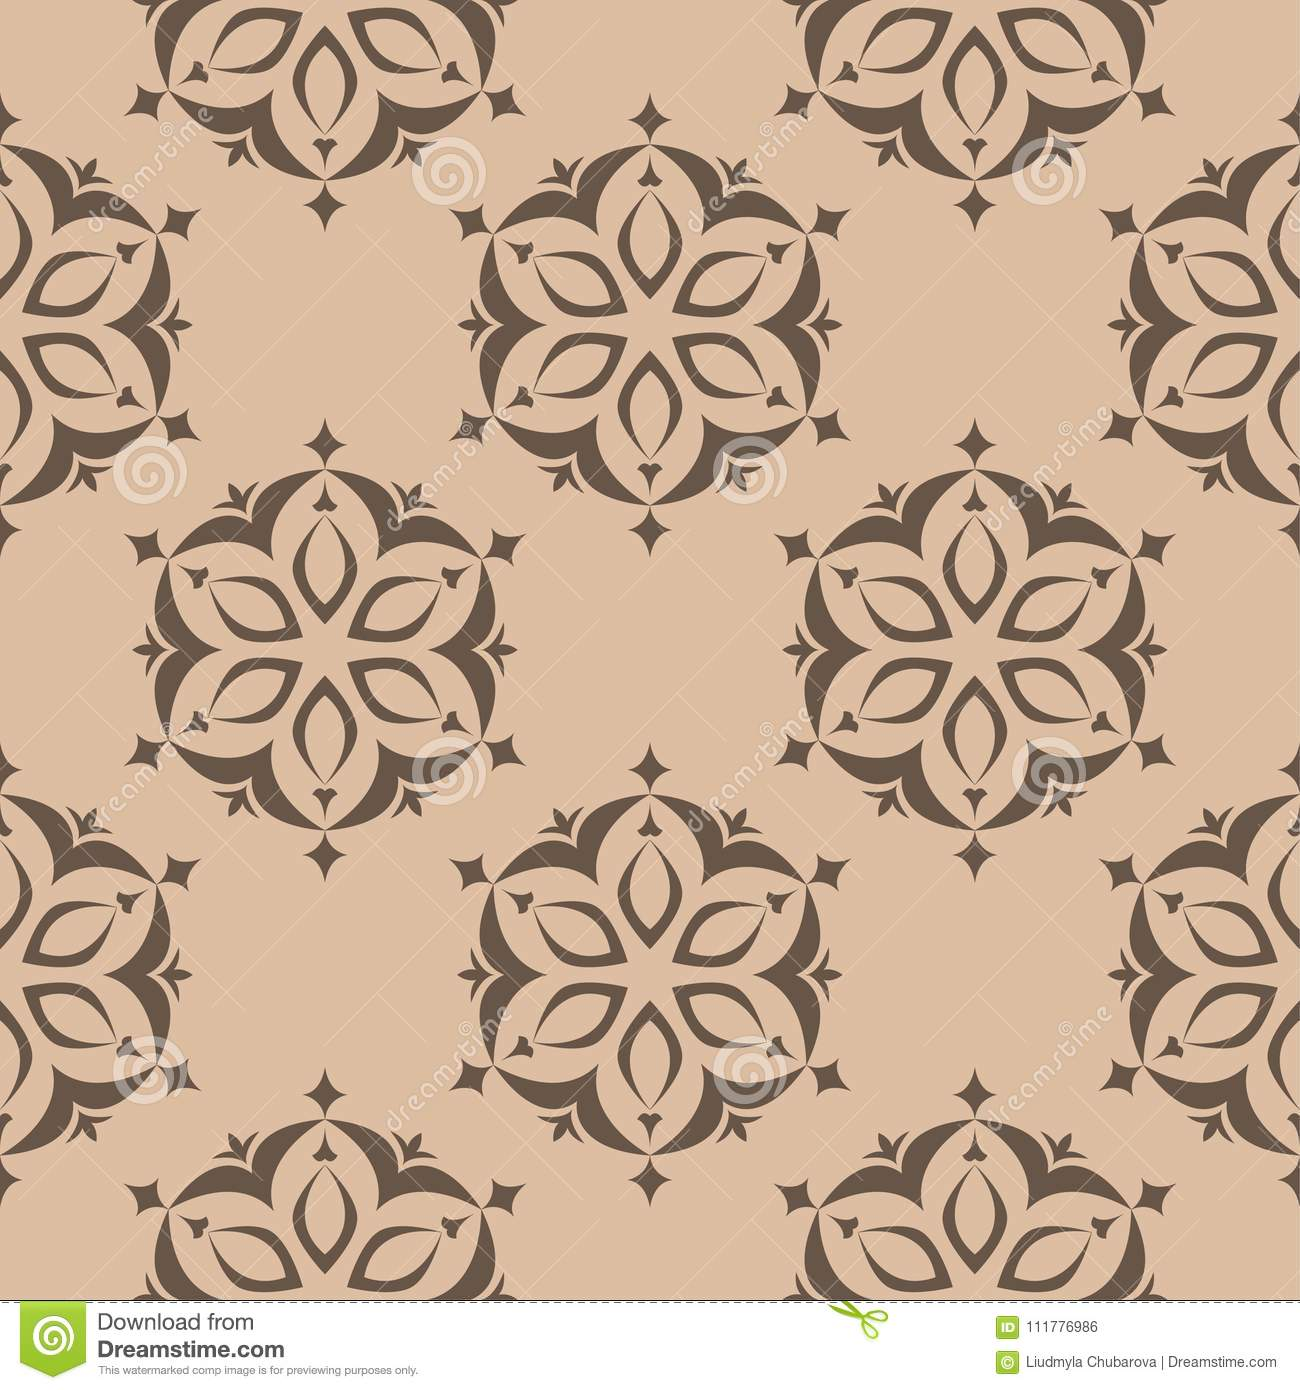 Floral brown seamless pattern. Background with fower elements for wallpapers